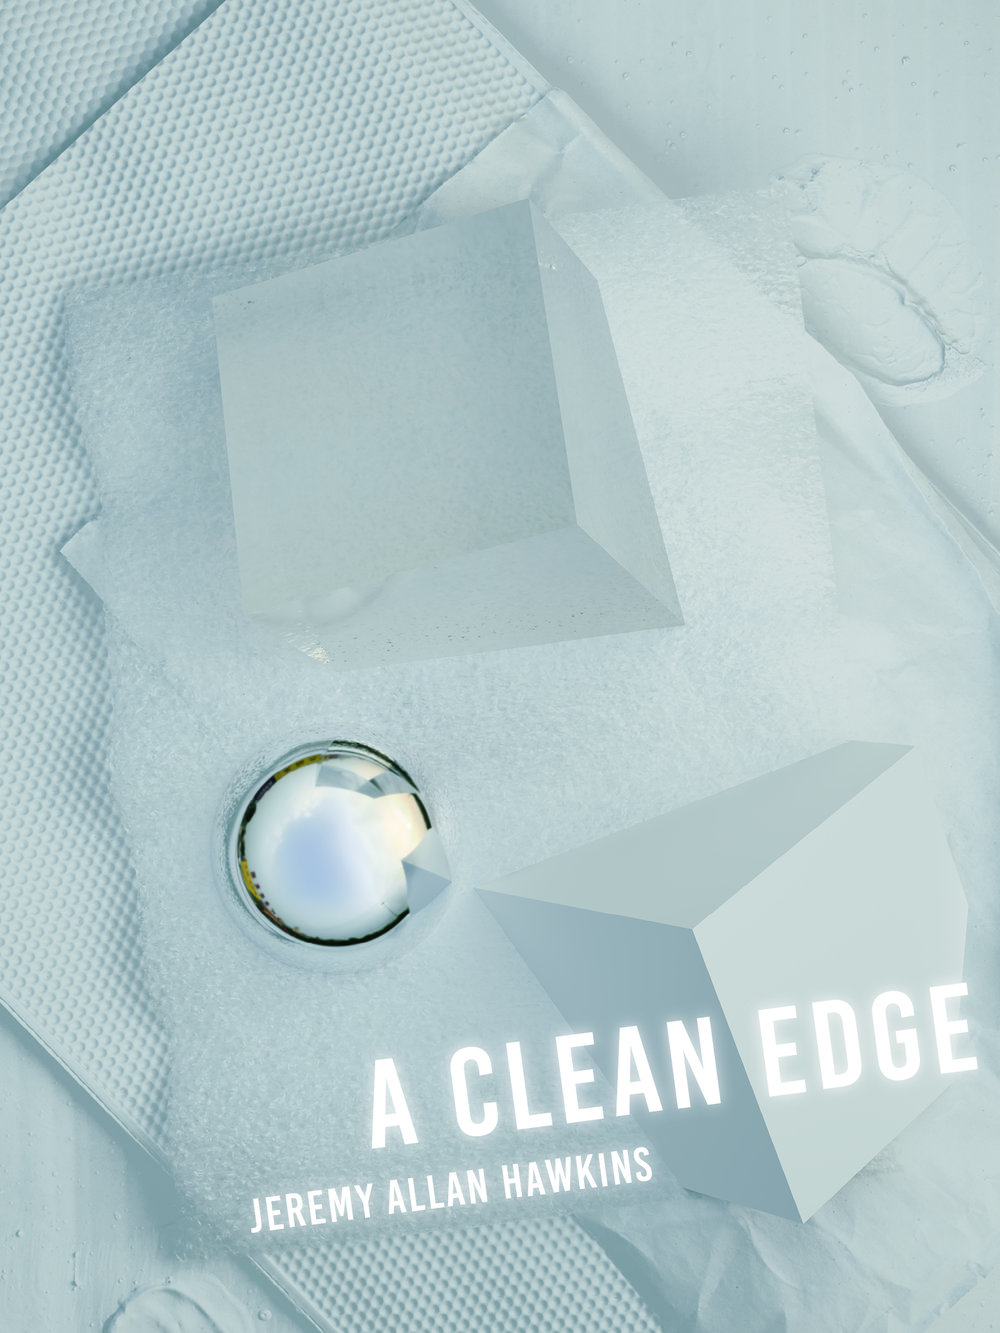 Cover + interior design for Jeremy Allan Hawkin's  A Clean Edge , winner of the 2016 BOAAT Press Chapbook Contest, selected by Richard Siken. Forthcoming from  BOAAT Press , Fall 2017.